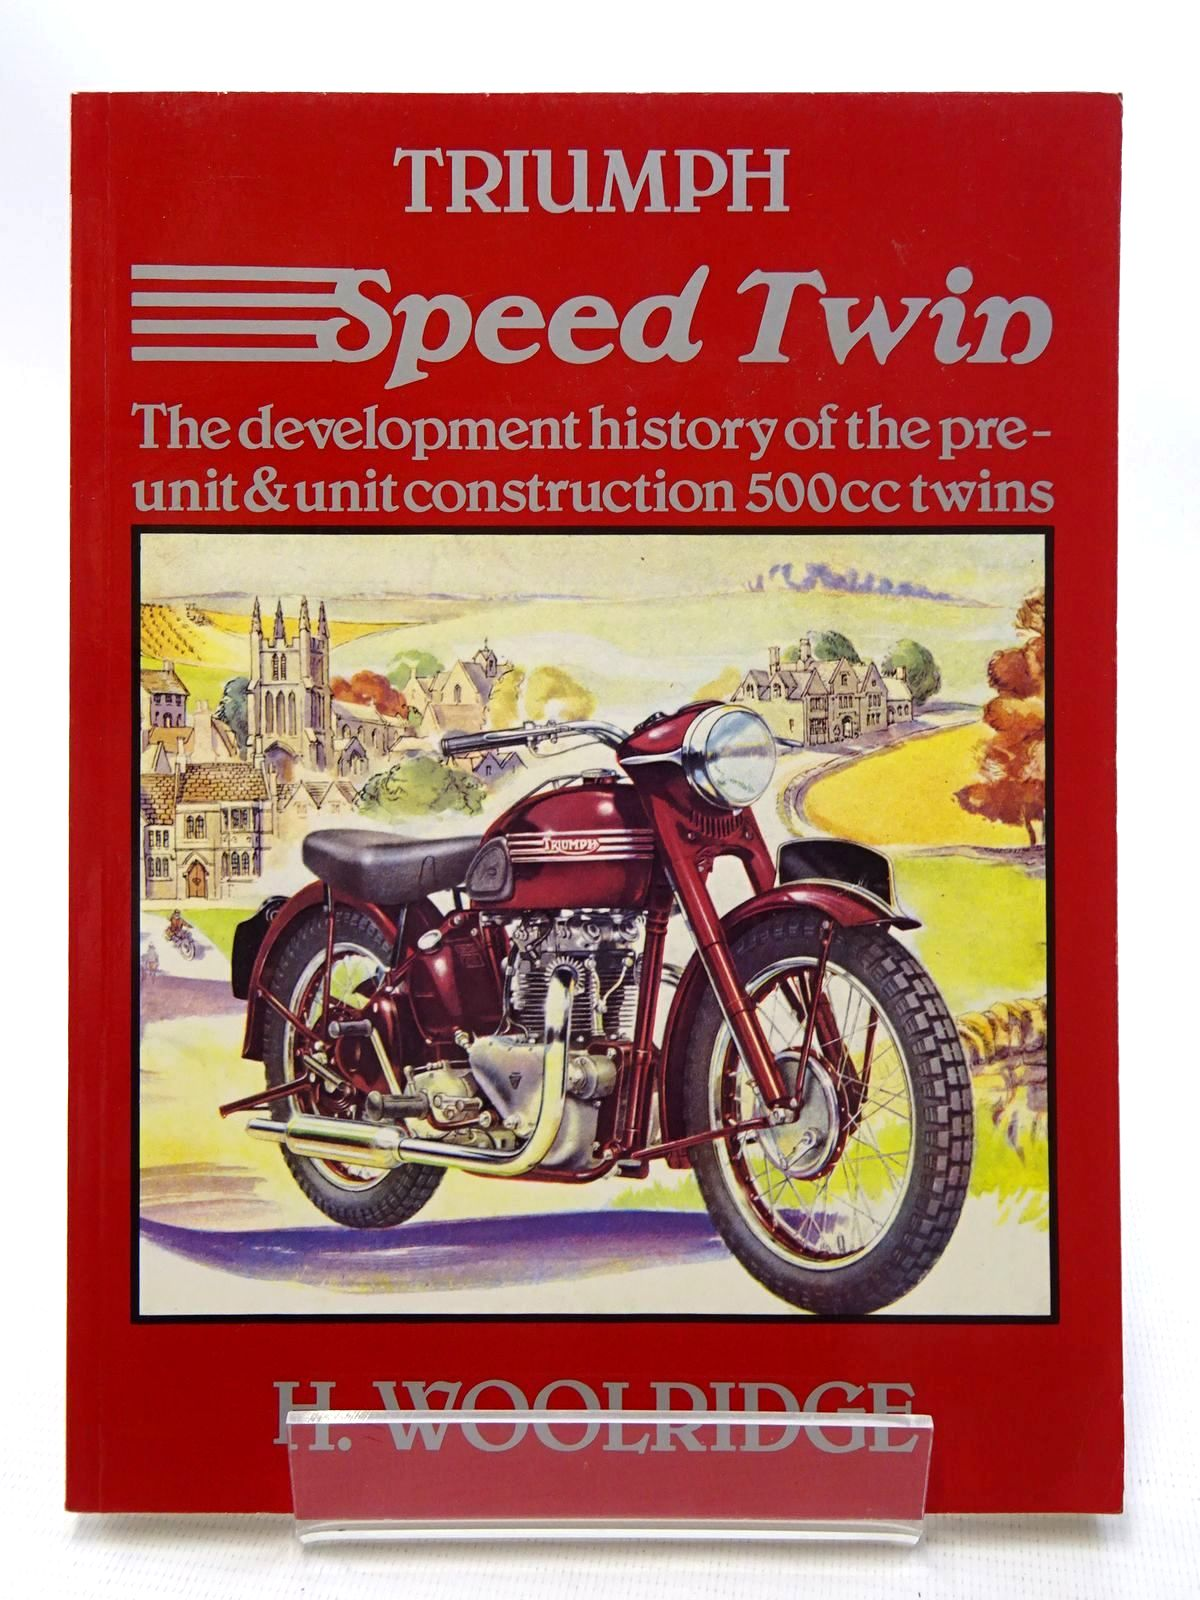 Photo of TRIUMPH SPEED TWIN written by Woolridge, H. published by Haynes Publishing Group (STOCK CODE: 1610537)  for sale by Stella & Rose's Books